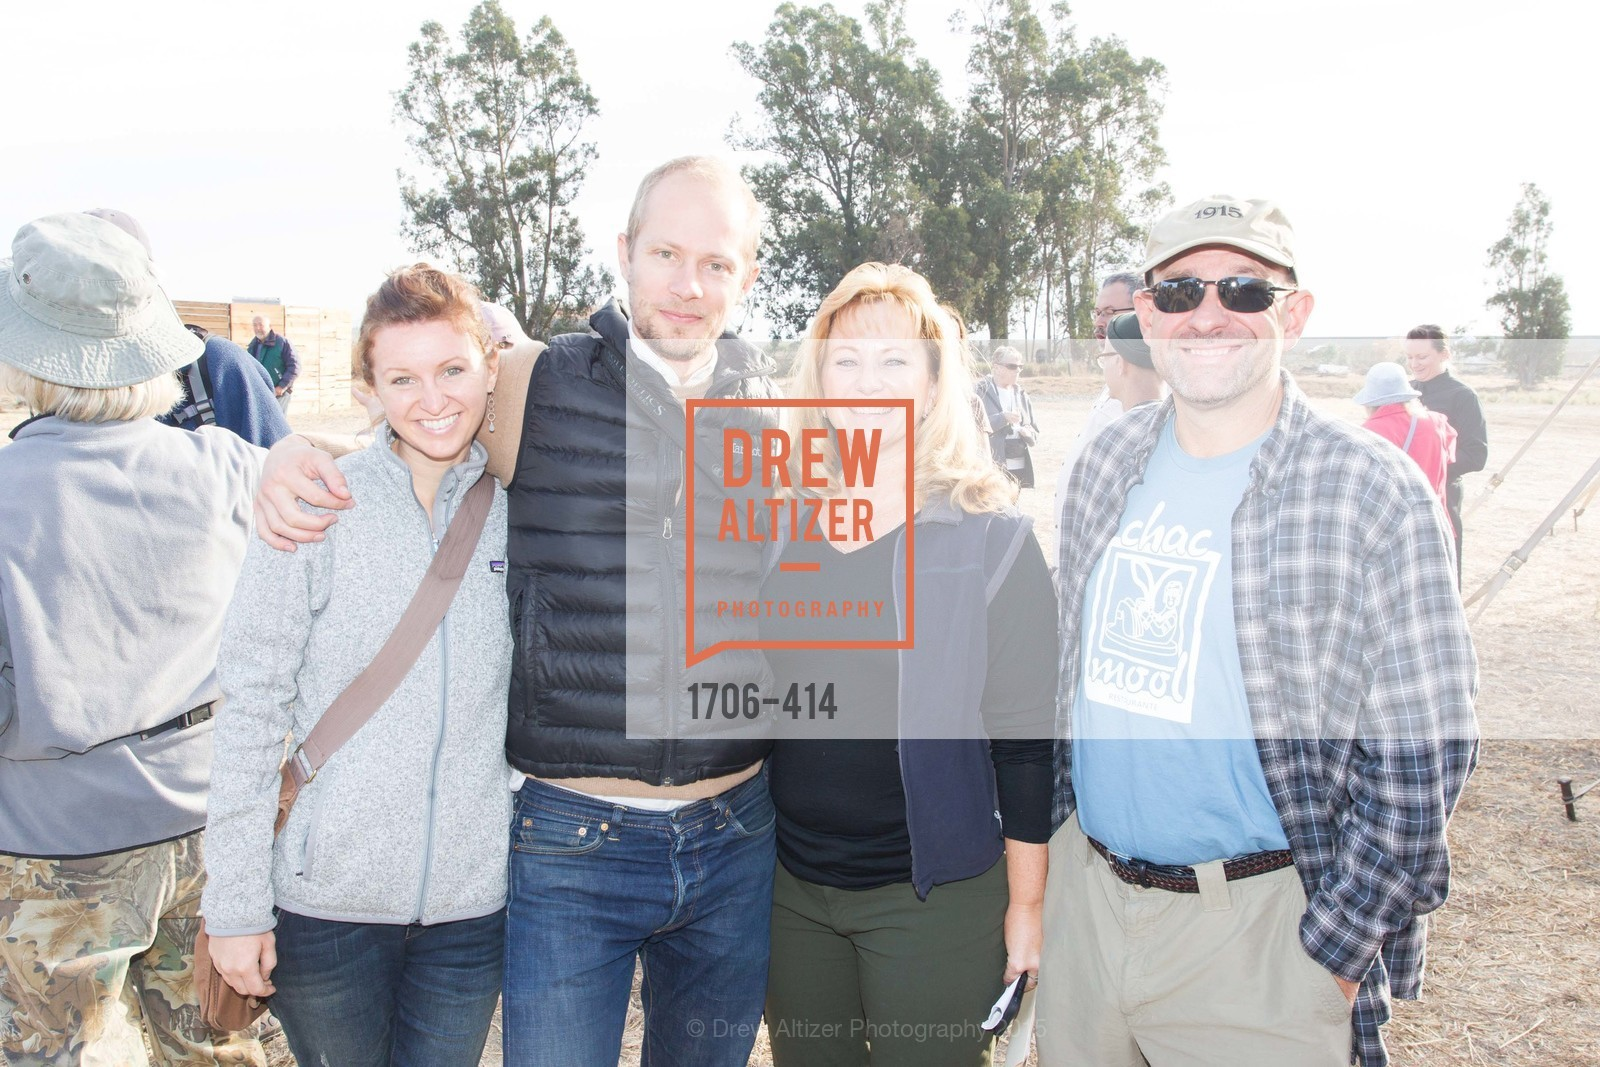 Kelly Friedric, Chris Turnell, Jacobi Lynn, Trent Higger, SEA CHANGE at Sears Point with Sonoma Land Trust, Sears Point. Hwy 37 and Lakeville Hwy, October 25th, 2015,Drew Altizer, Drew Altizer Photography, full-service agency, private events, San Francisco photographer, photographer california